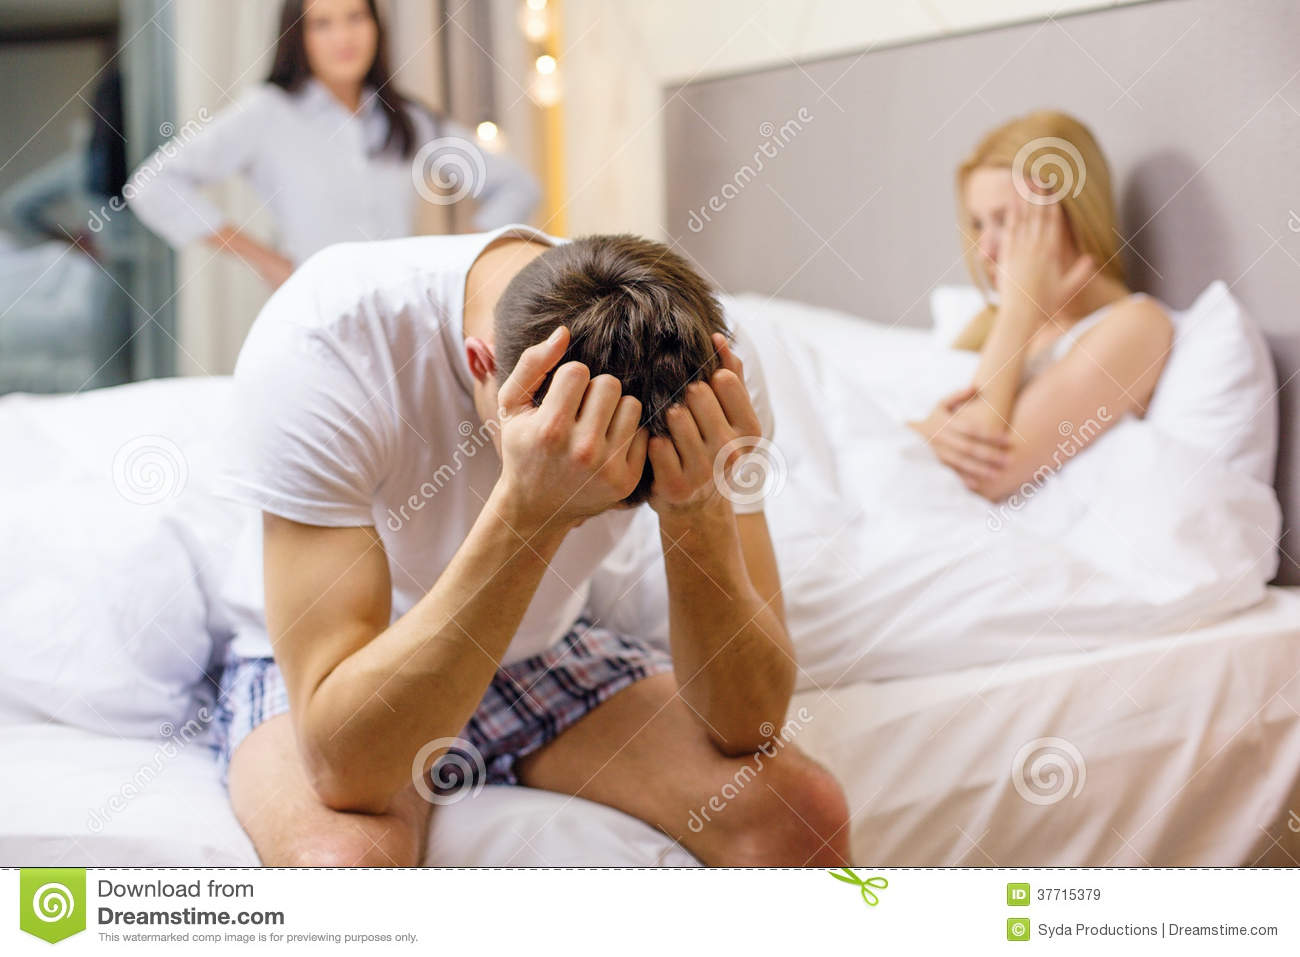 Women in bed with another woman